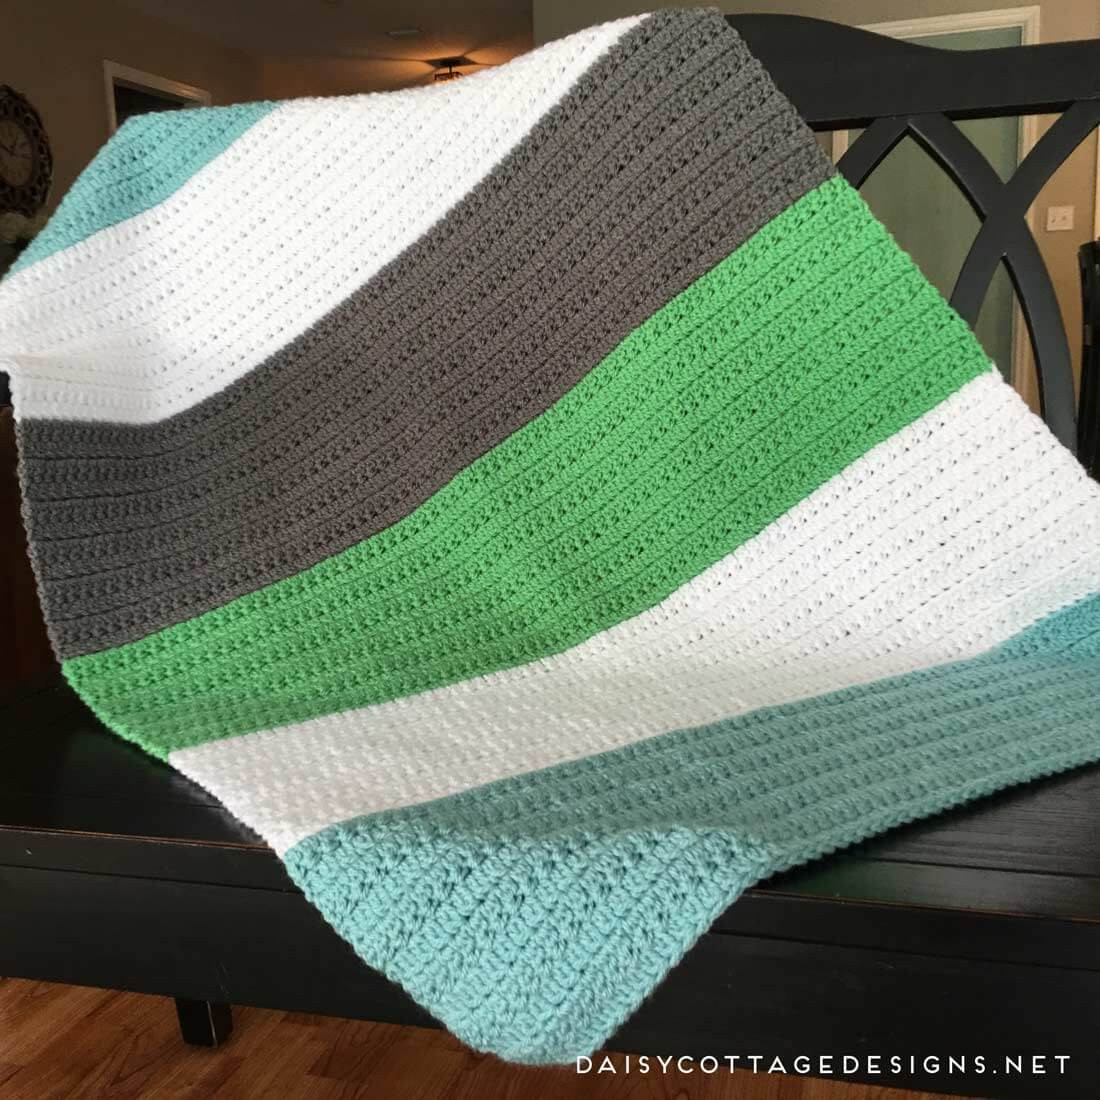 Crochet Patterns for Baby Blankets Best Of Crochet Baby Blanket From Daisy Cottage Designs Of Great 50 Photos Crochet Patterns for Baby Blankets